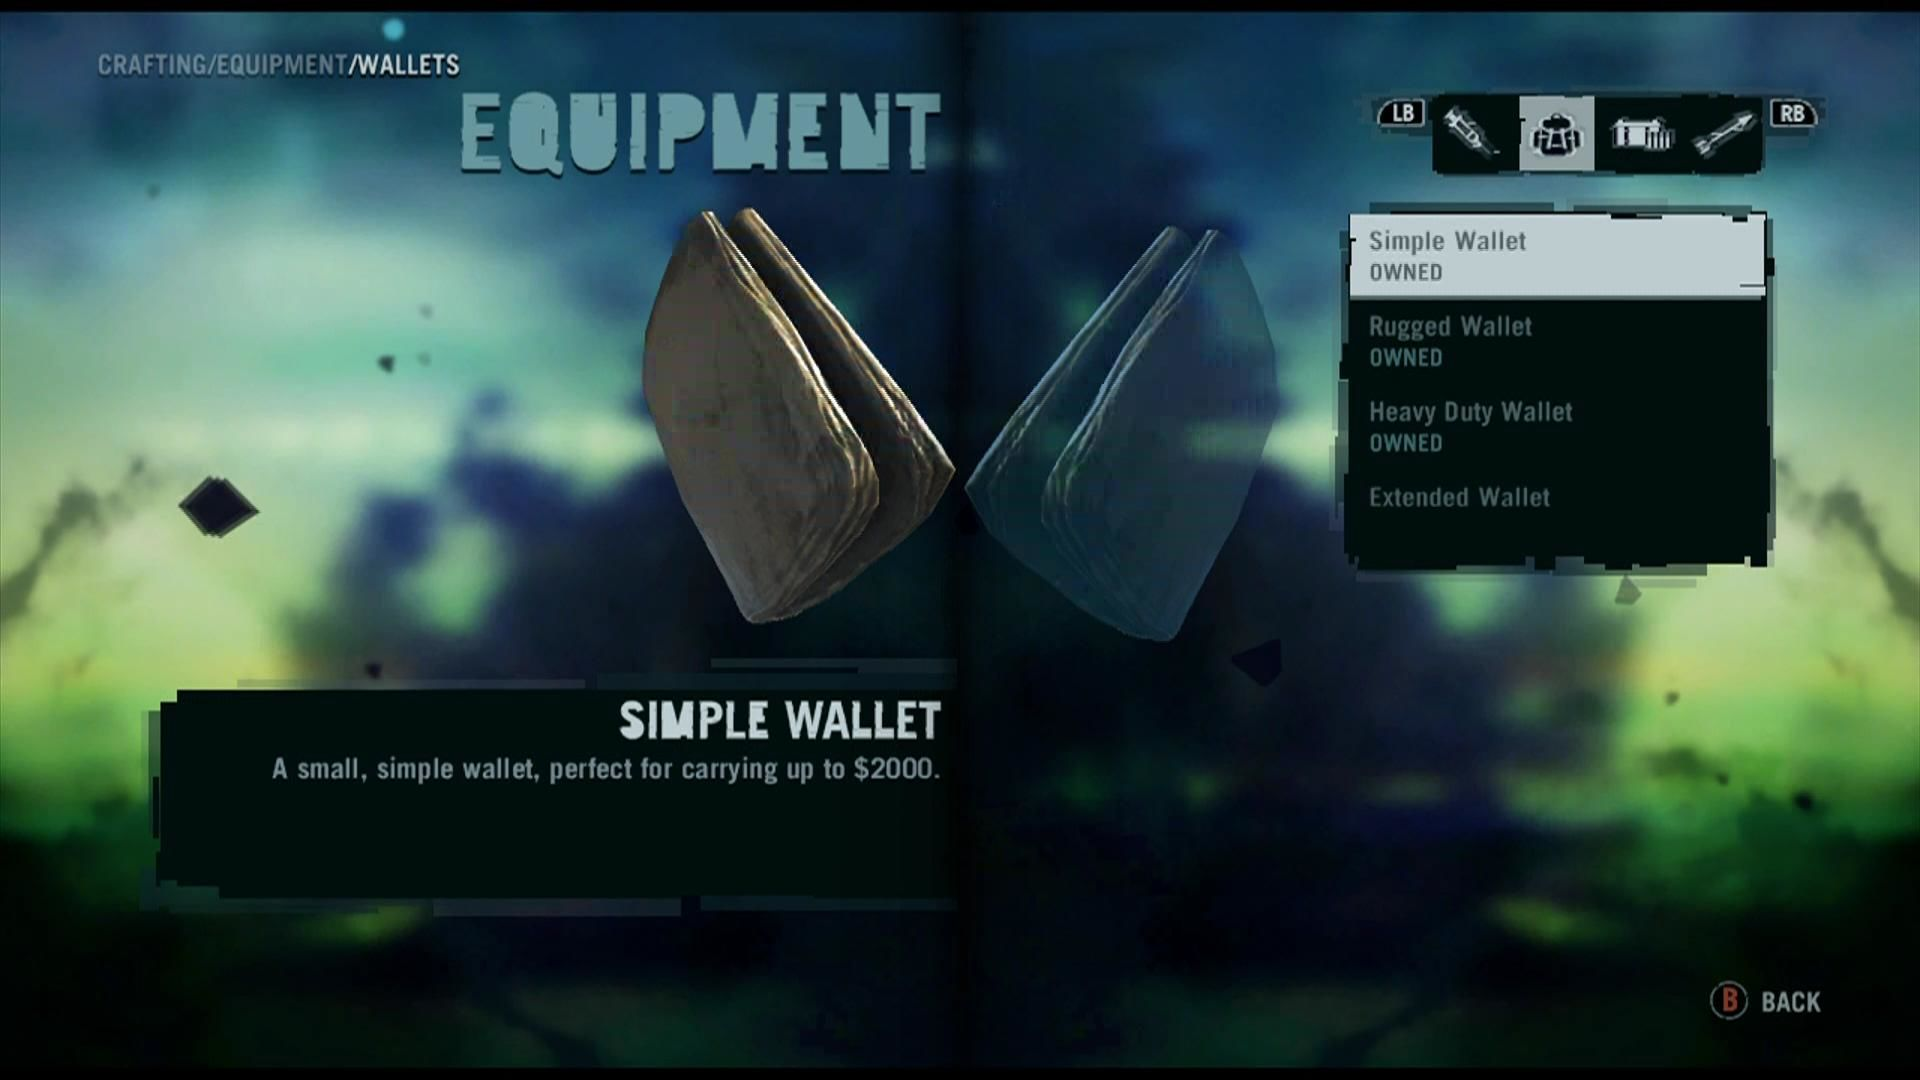 Far Cry 3 Xbox 360 Item screen. Items and Equipment can be upgraded using animal skins